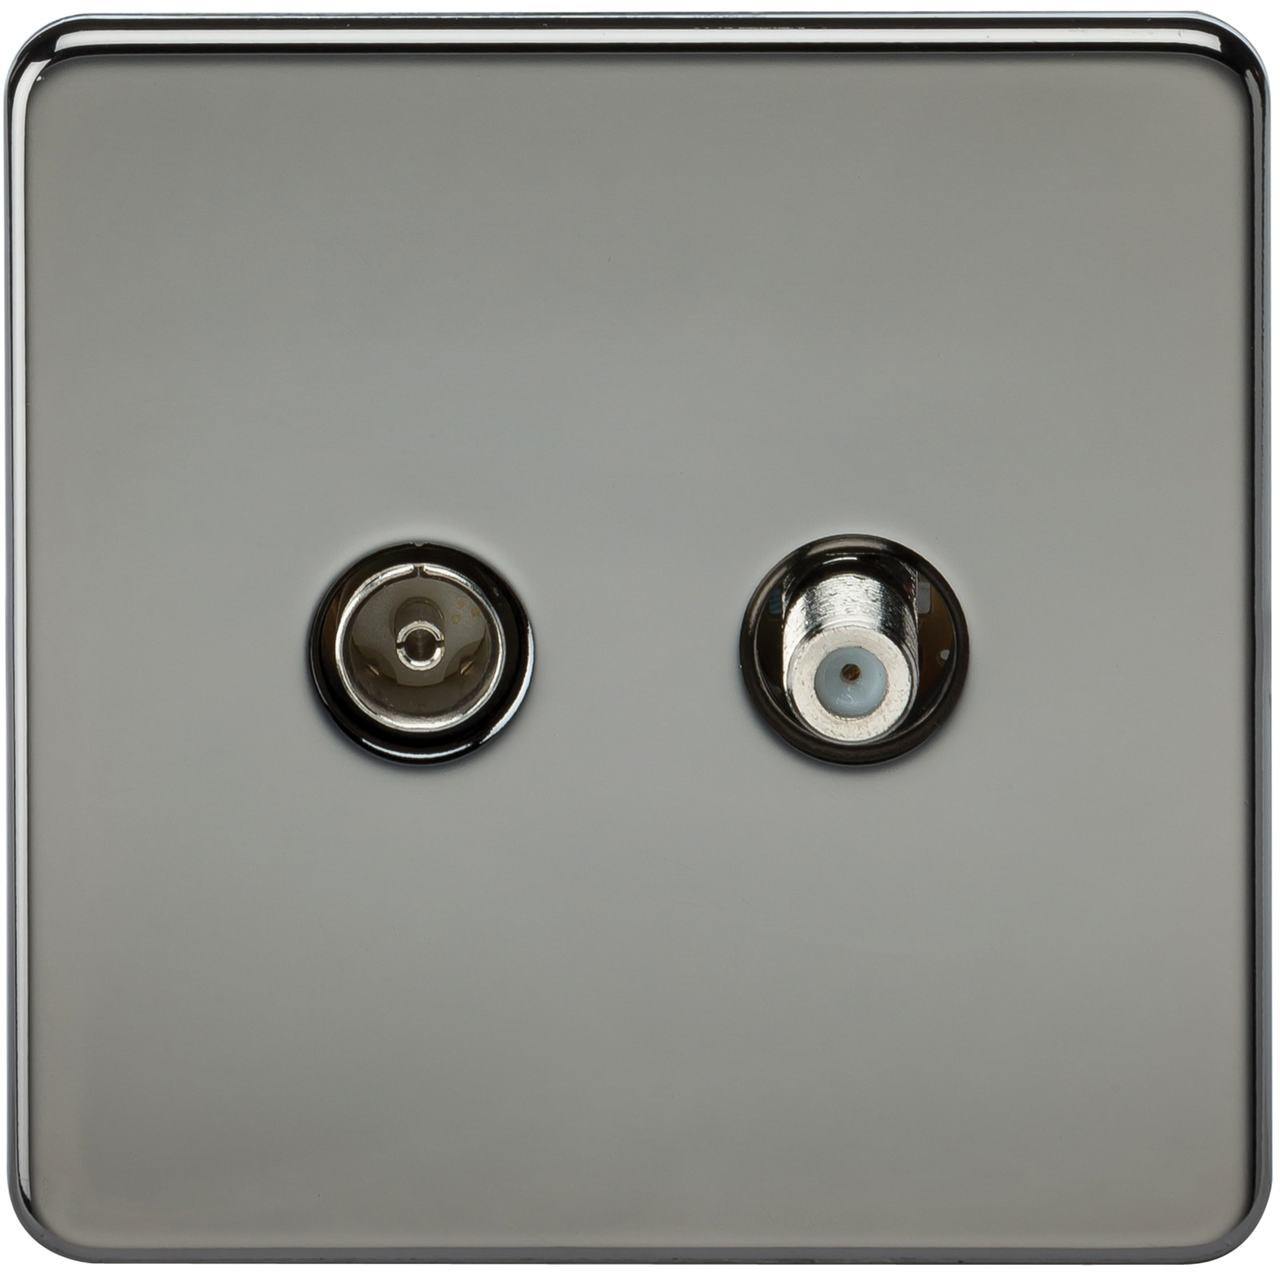 Screwless TV & SAT TV Outlet (Isolated) - Black Nickel (DFL1SF0140BN)